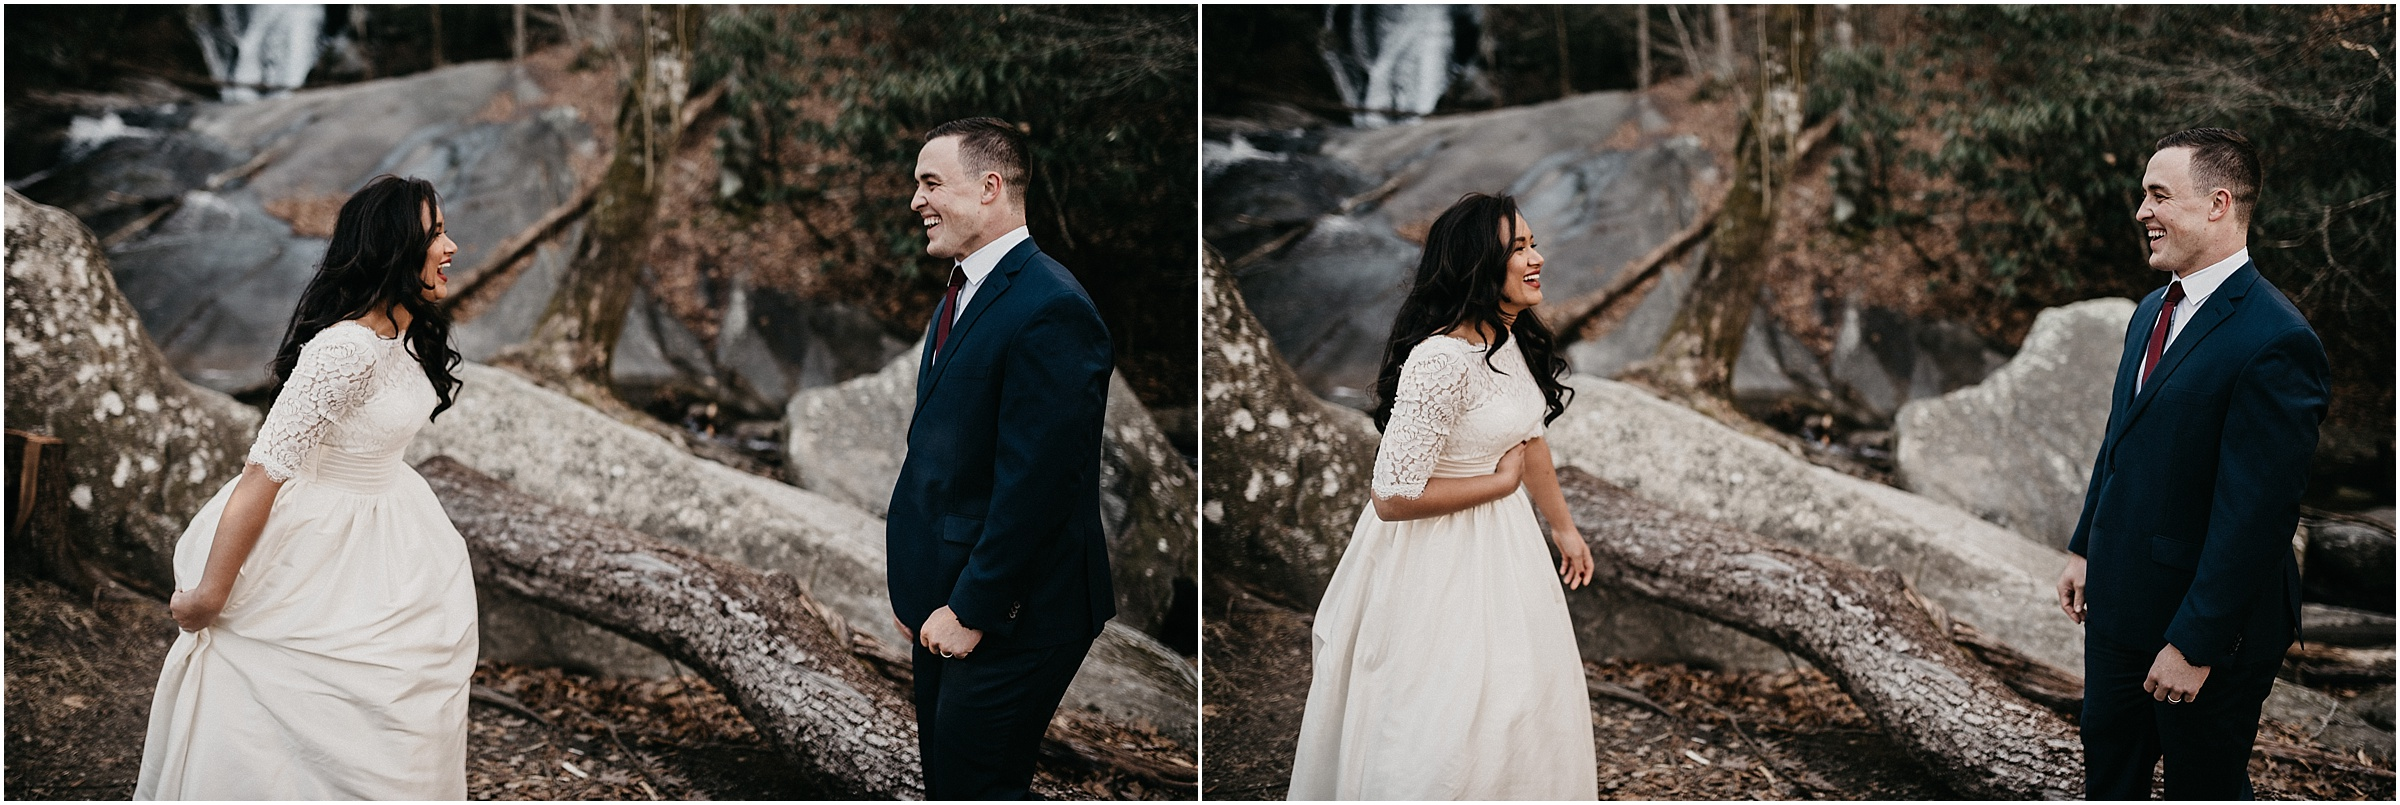 Stone_Mountain_NC_Elopement_3.JPG